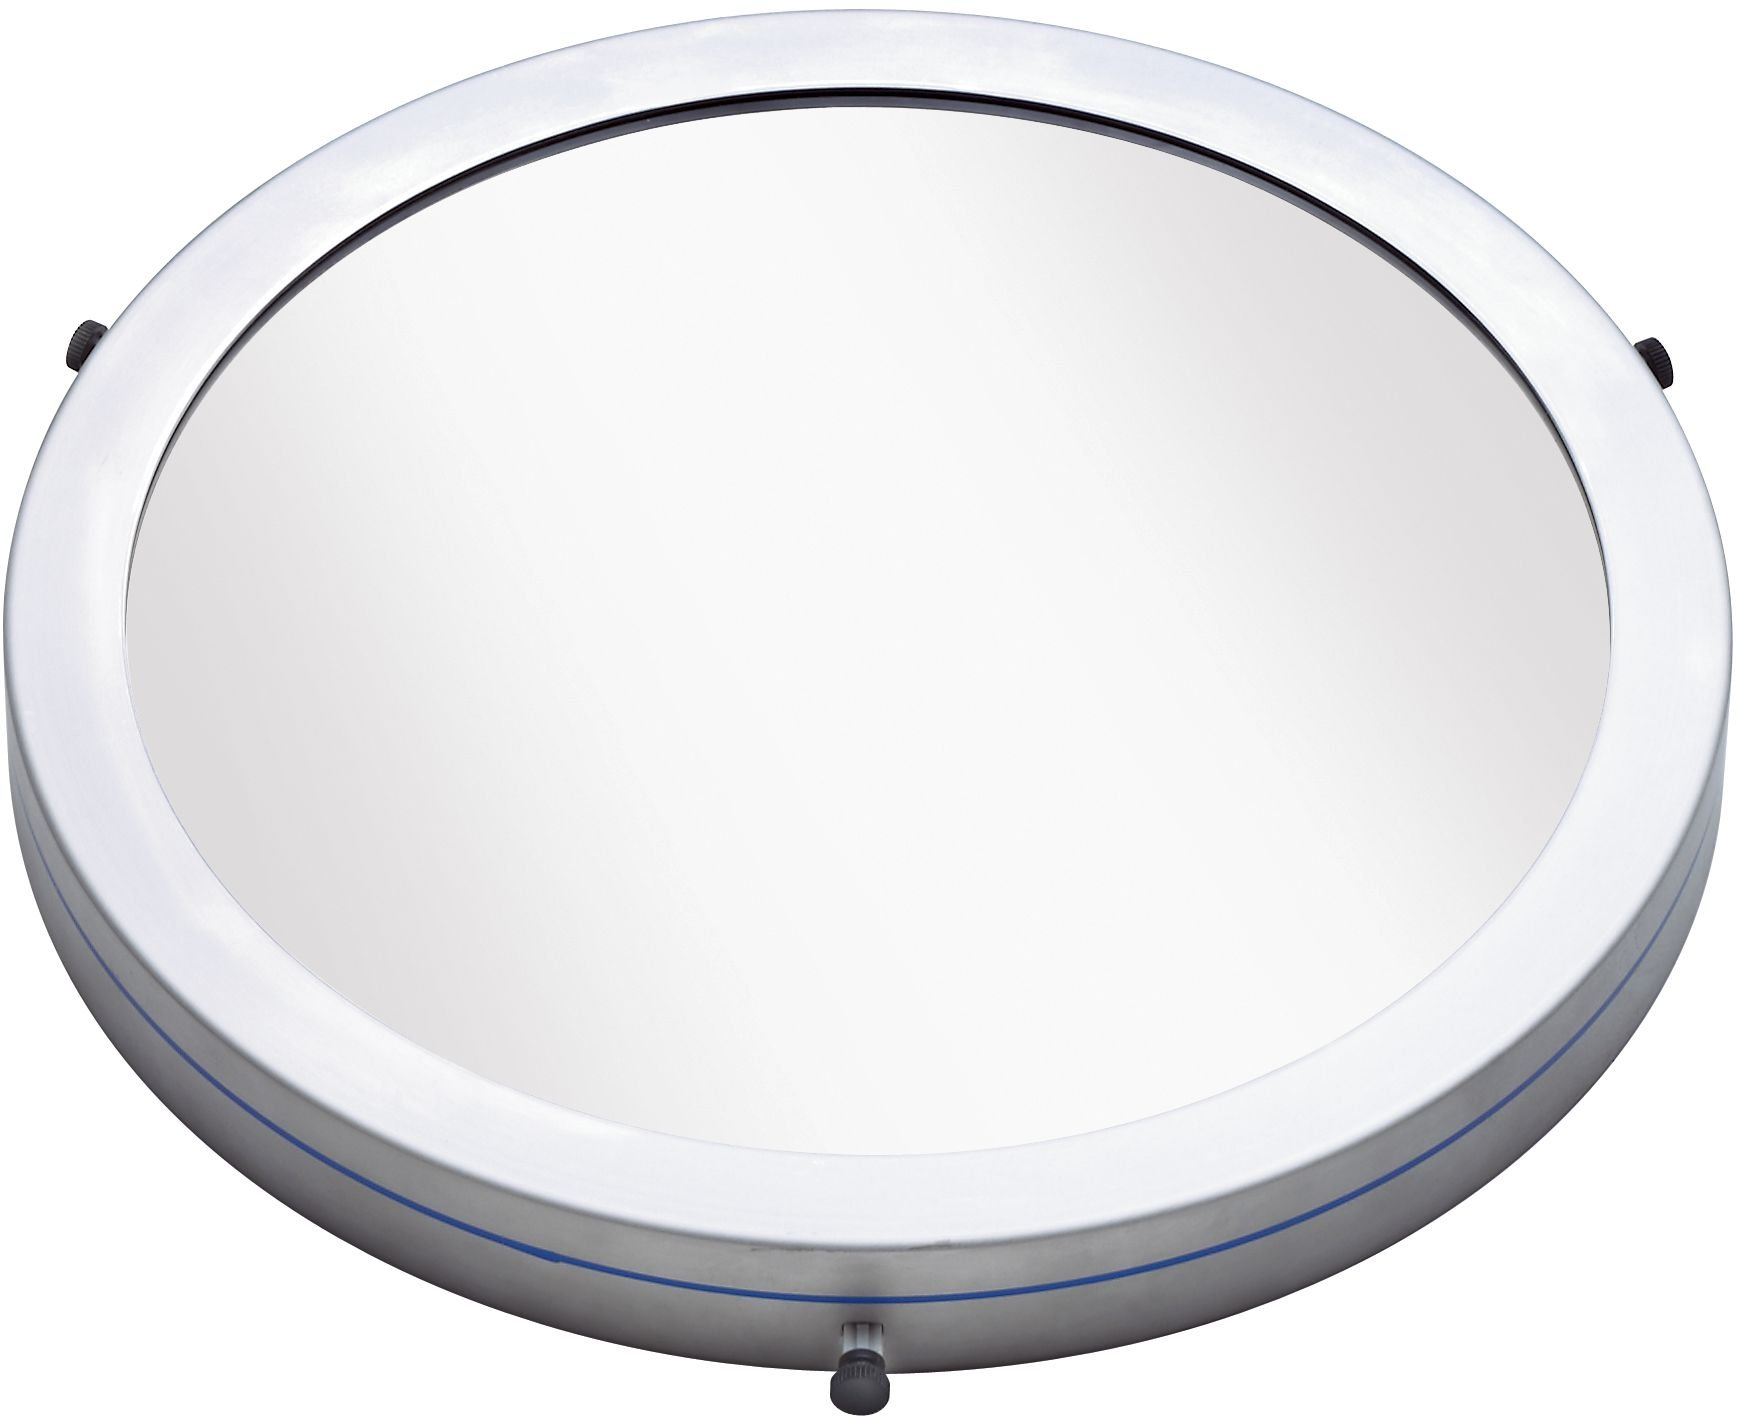 Orion 7782 10.56-Inch ID Full Aperture Solar Filter by Orion